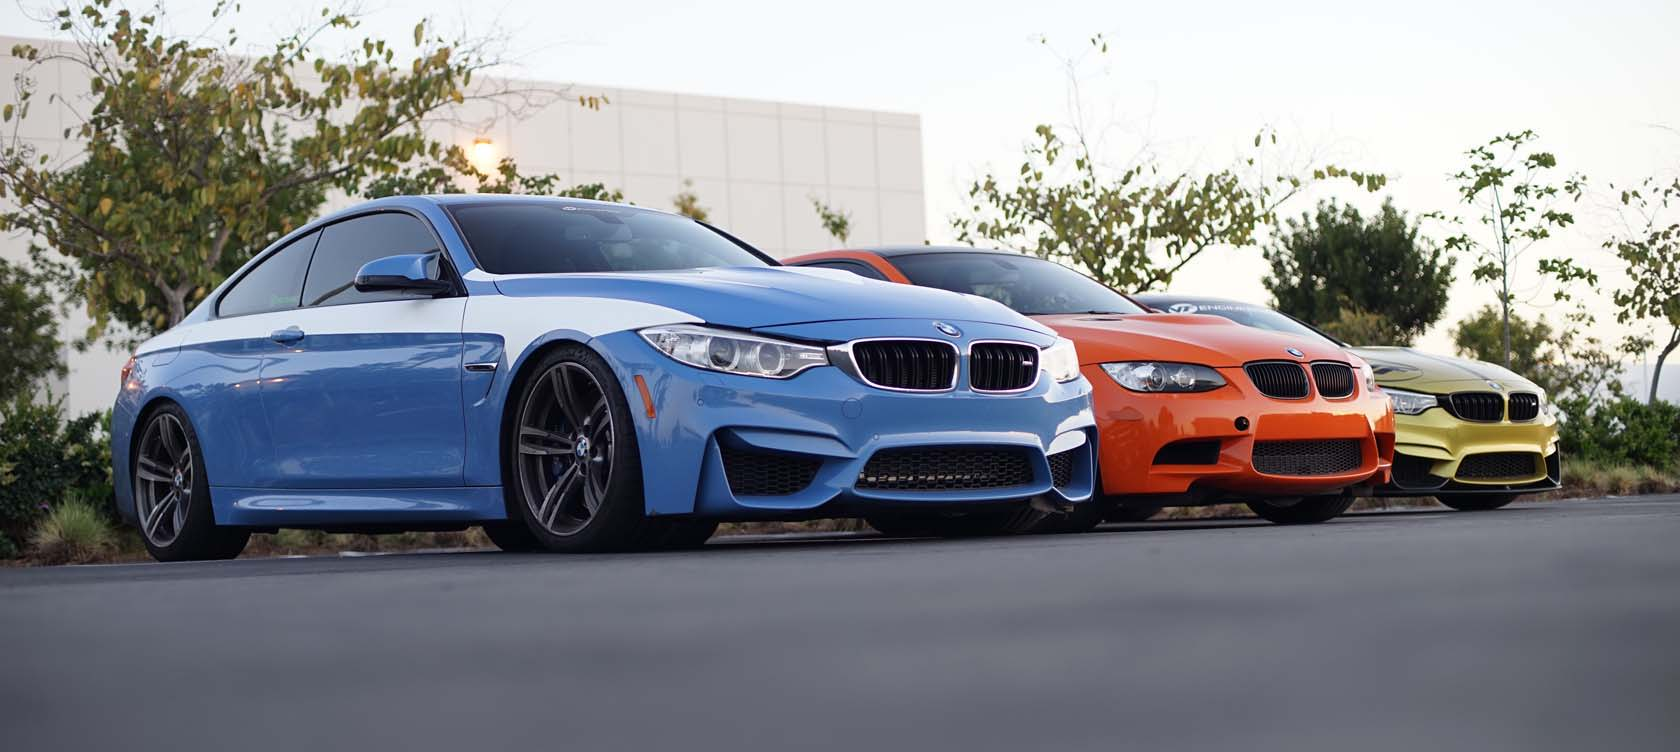 vf enginnering tuned bmws